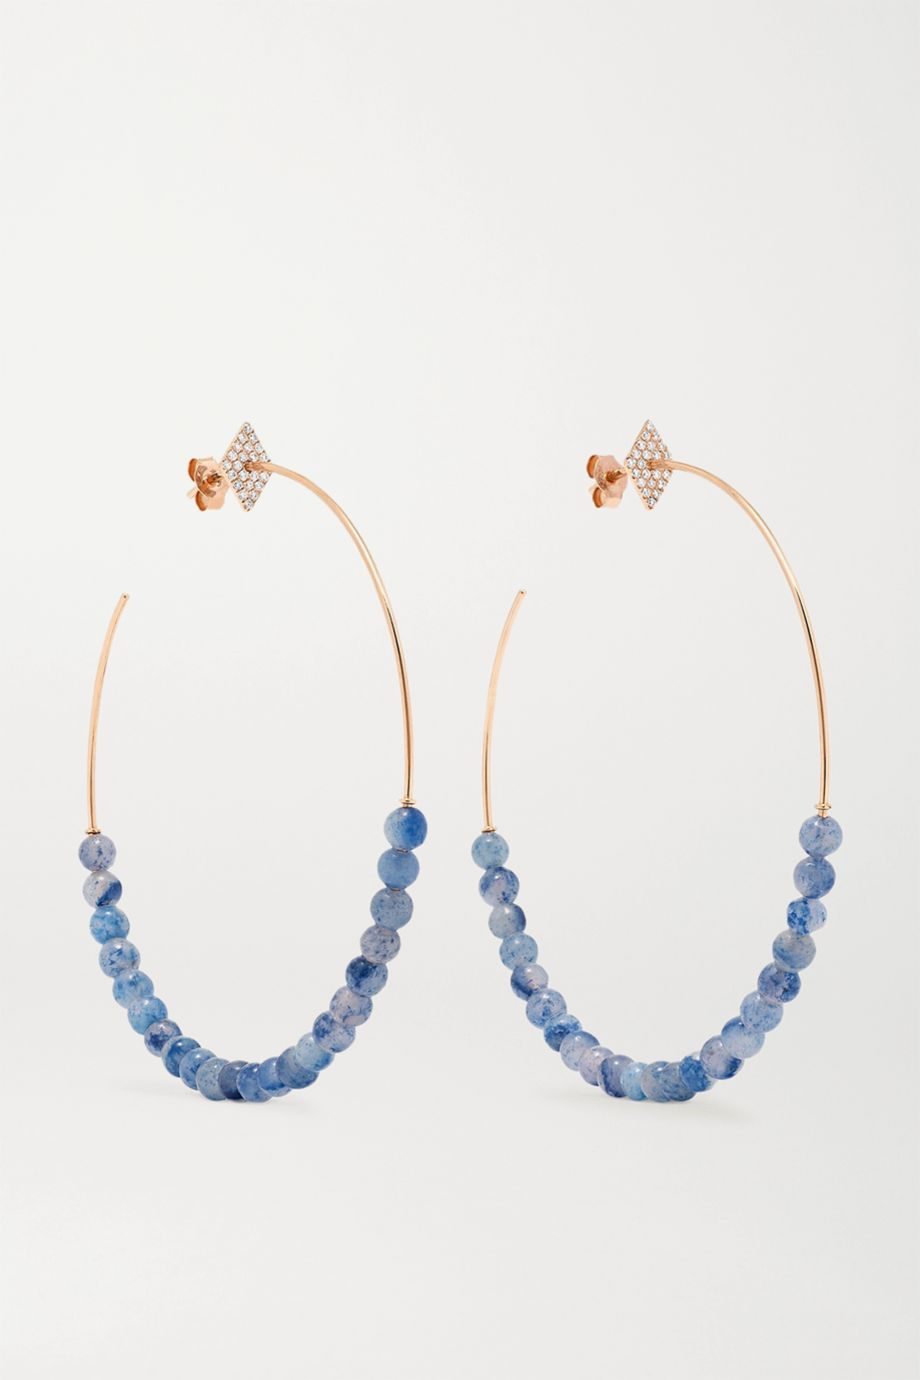 Diane Kordas 18-karat rose gold, aventurine and diamond hoop earrings